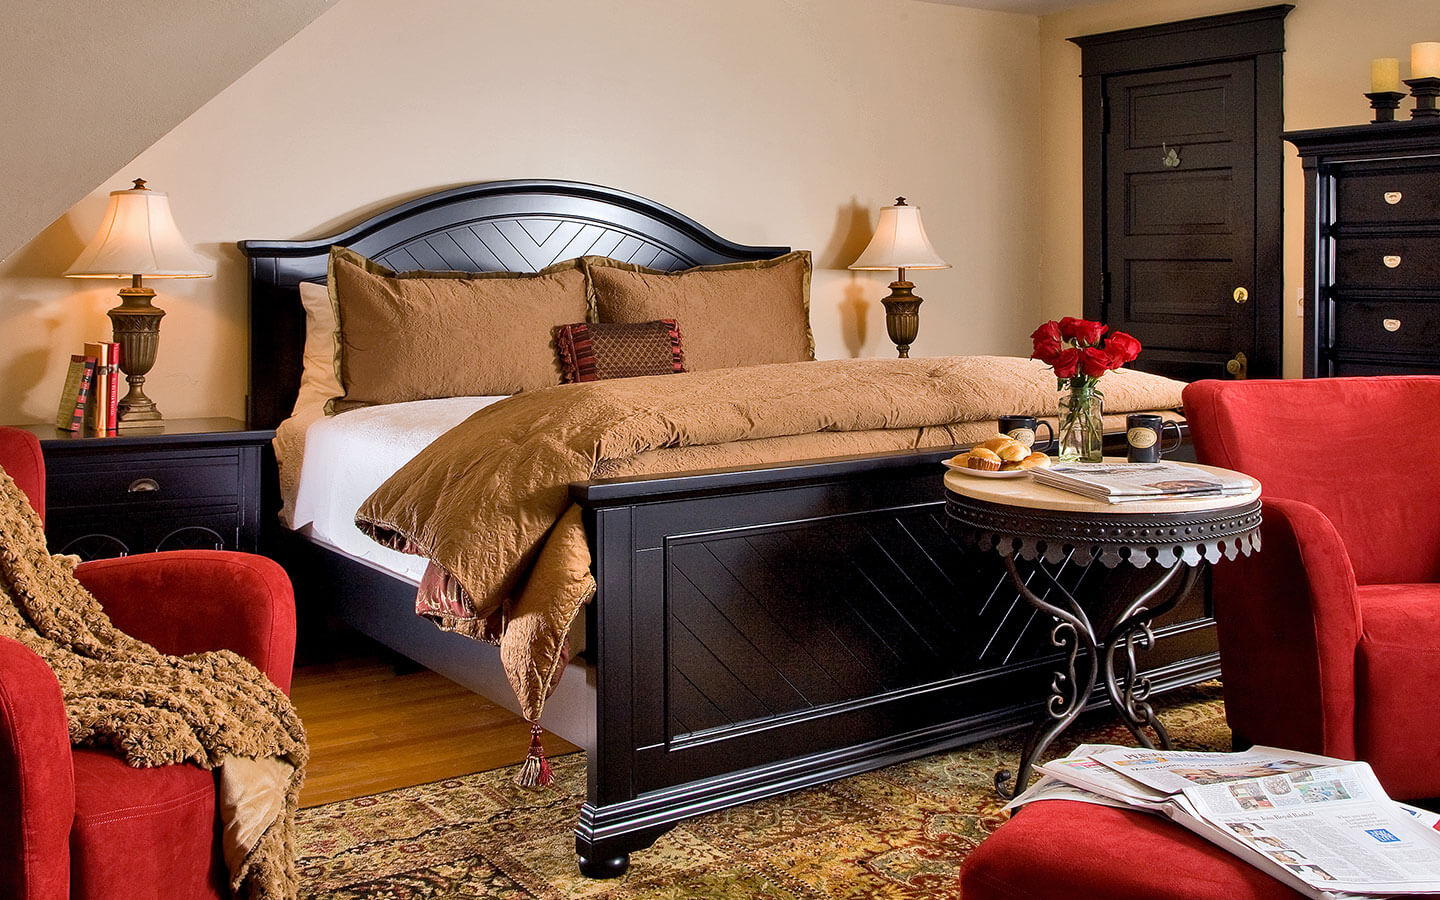 The Crowing Suite at our Allegan bed and breakfast, king bed in dark wood, table and red chairs.